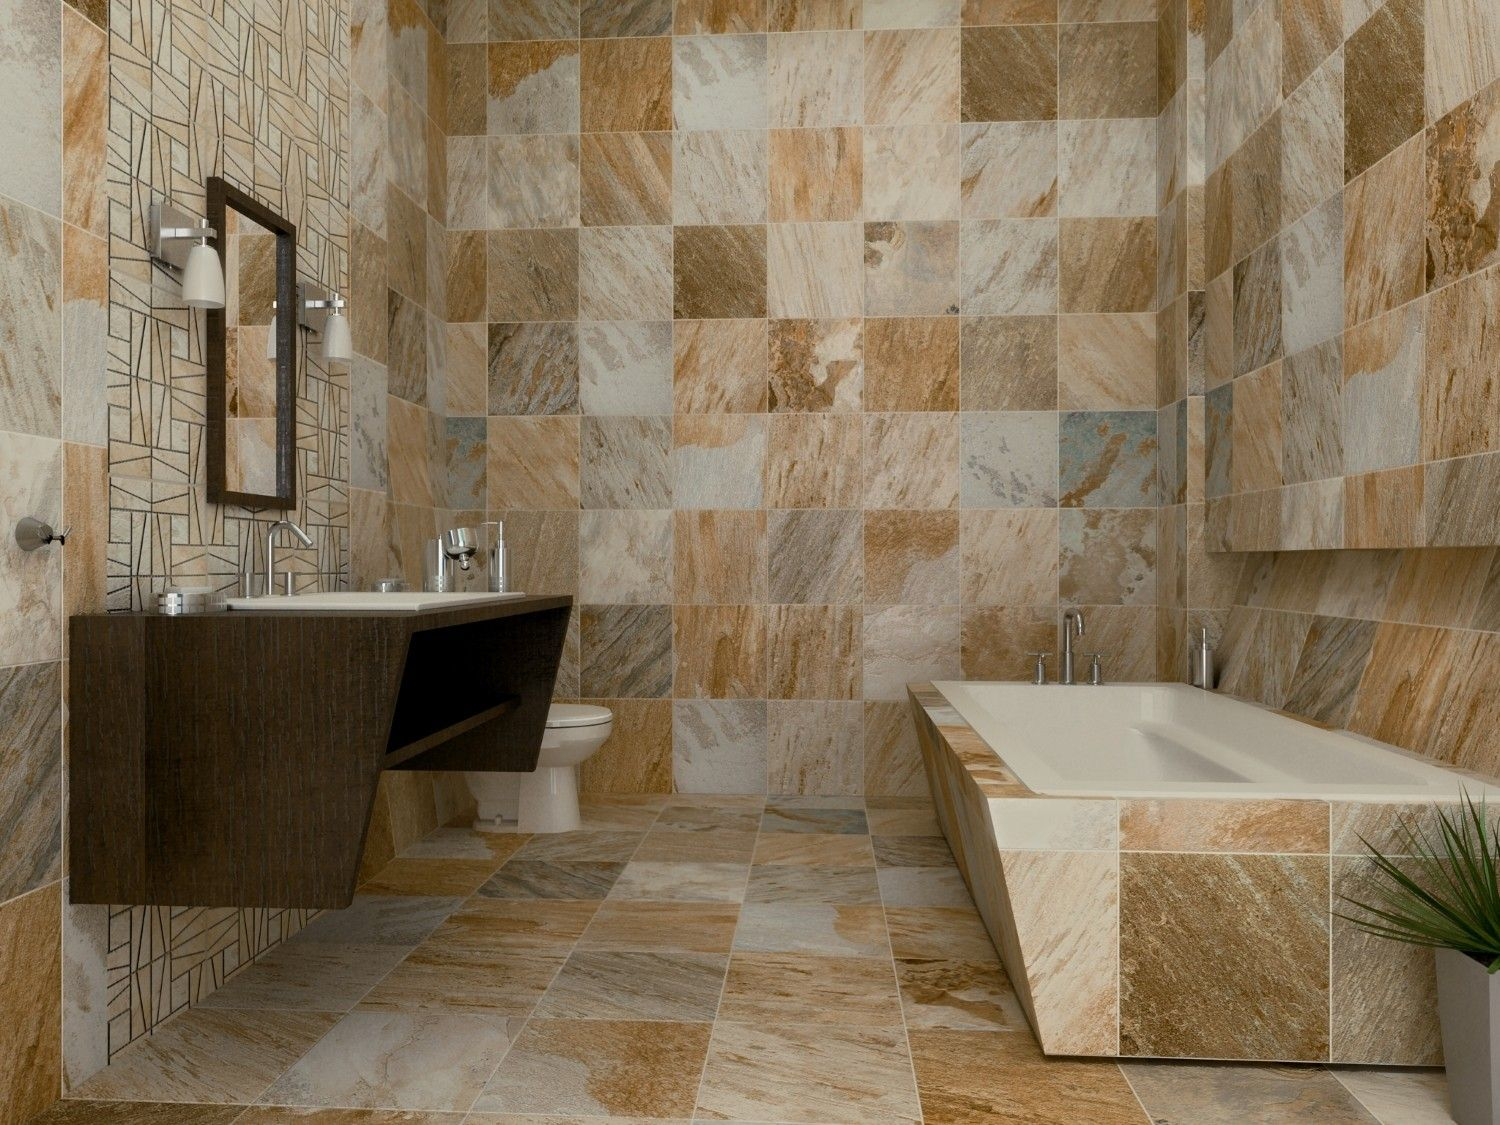 Slate Supremo Winter Floor Tile and wall decor by interceramic tile plus bathup for bathroom decor ideas